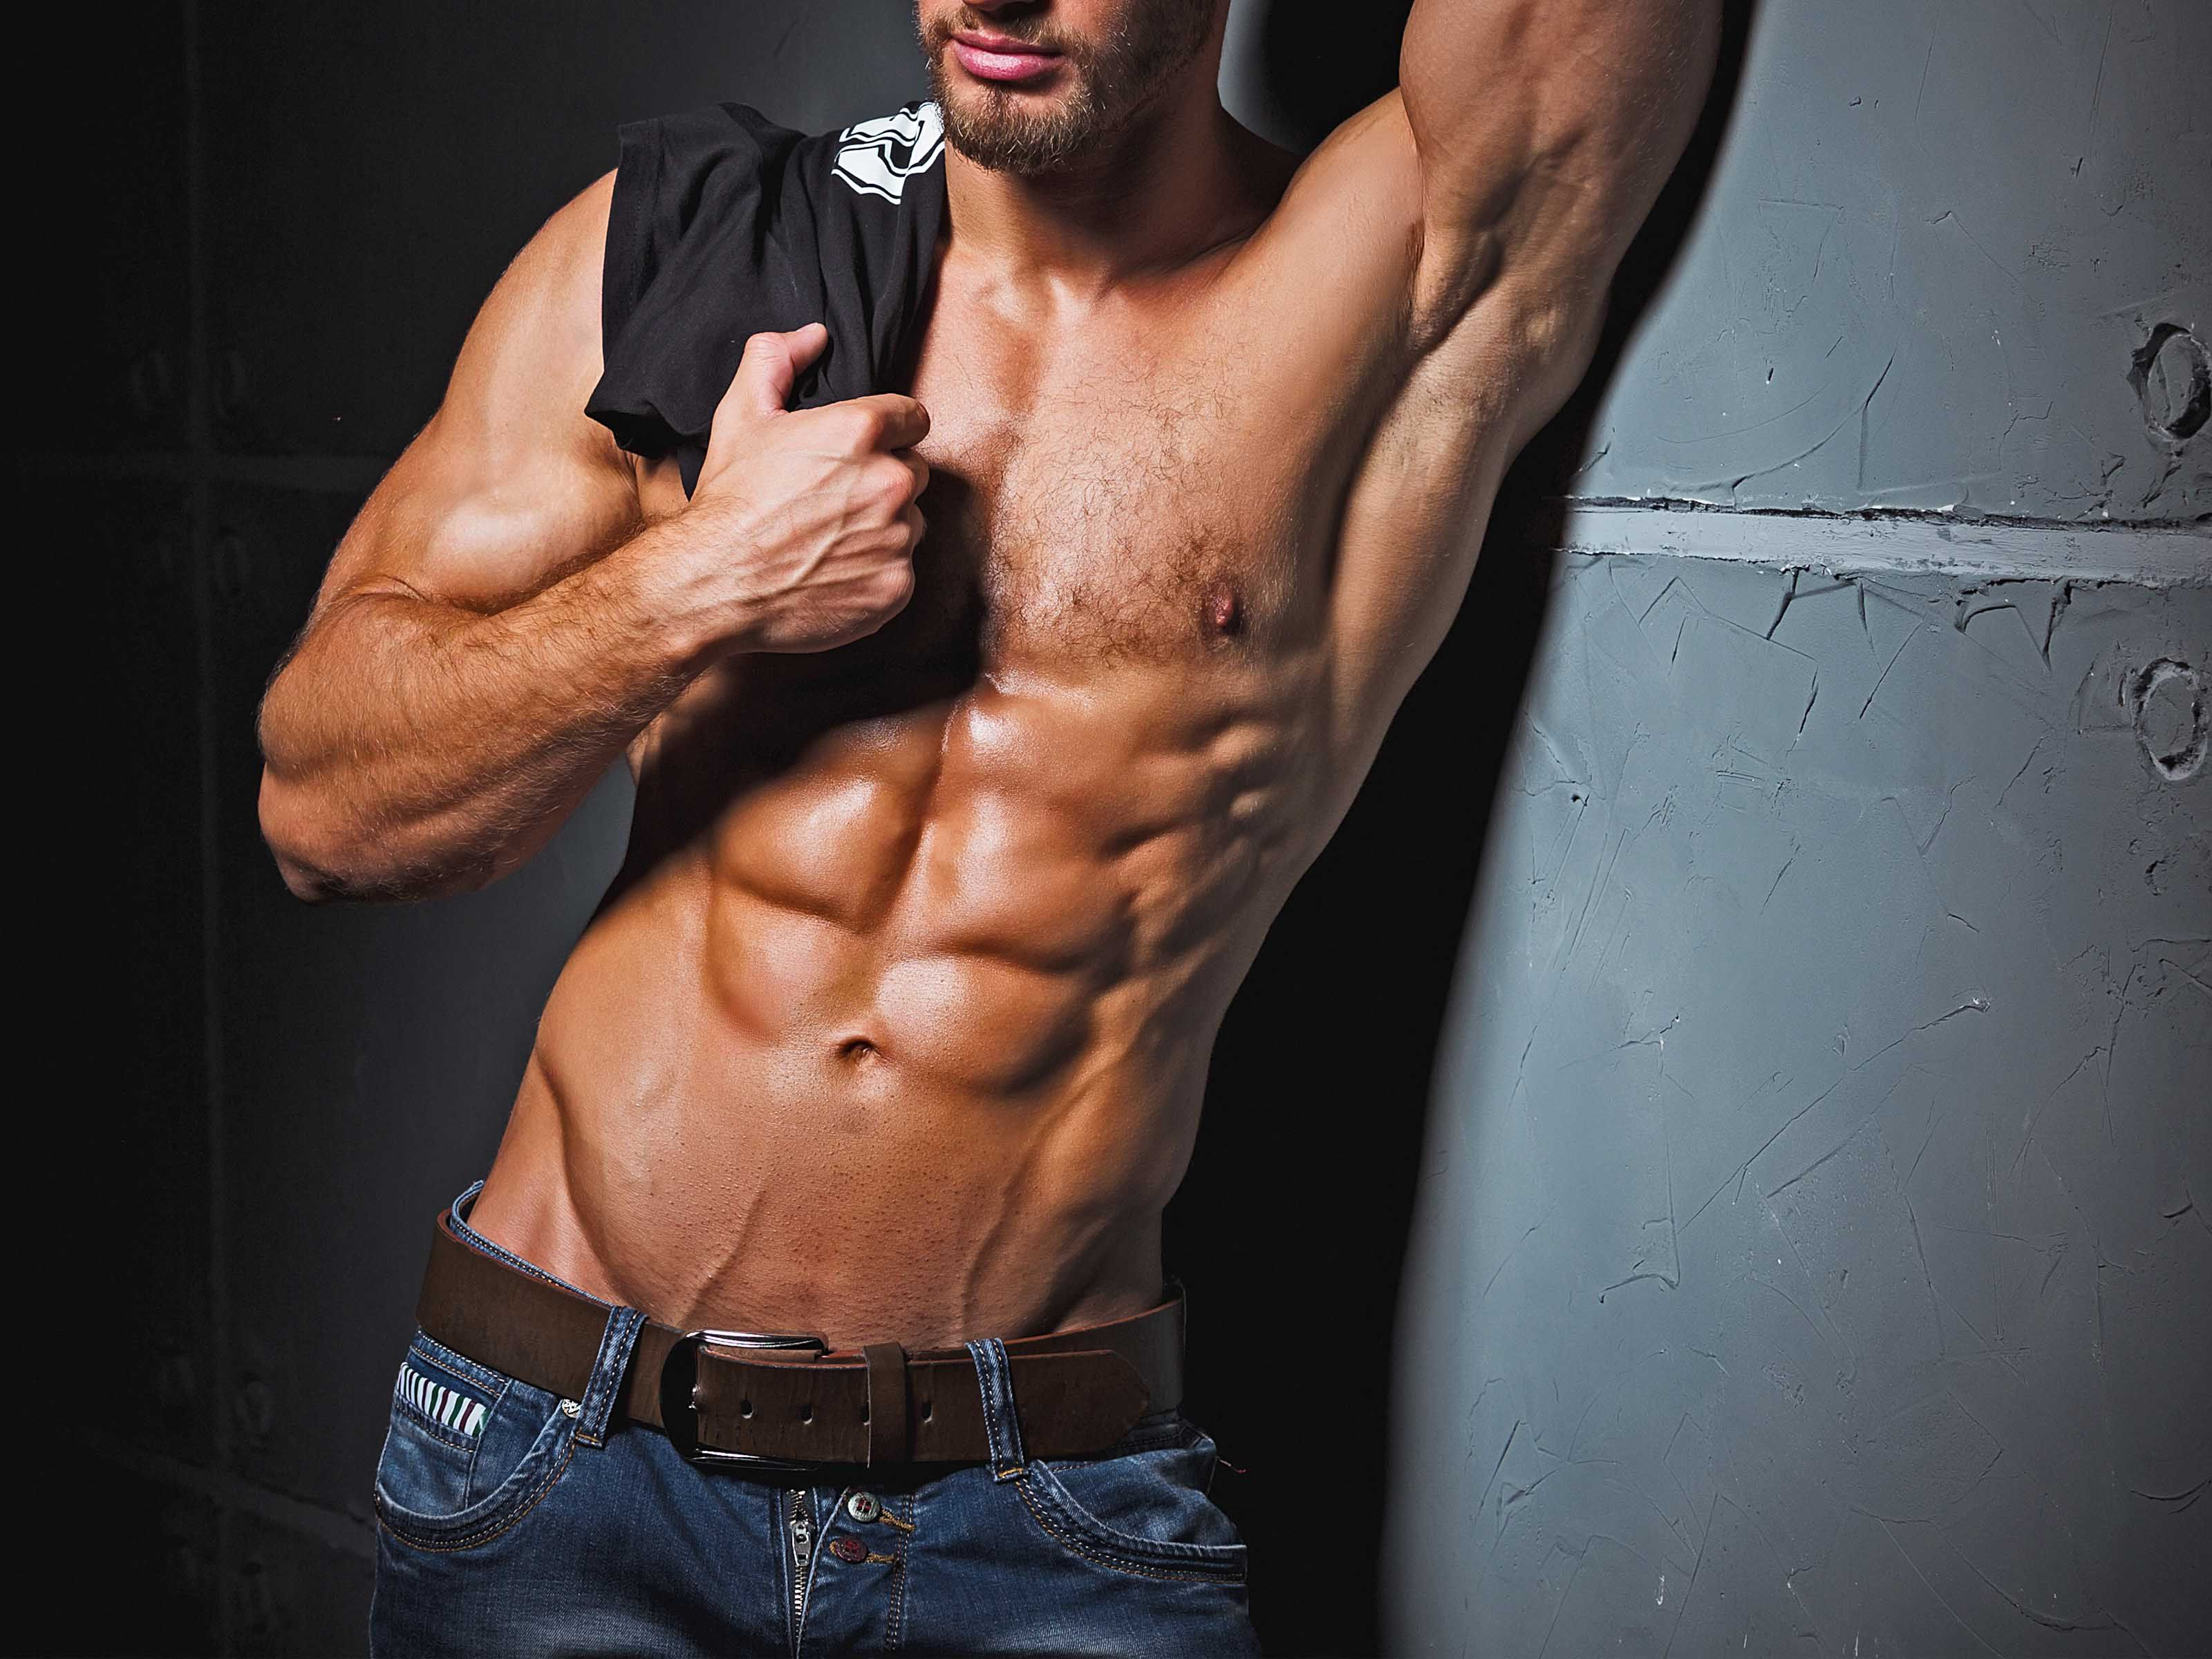 Hunky man stripper